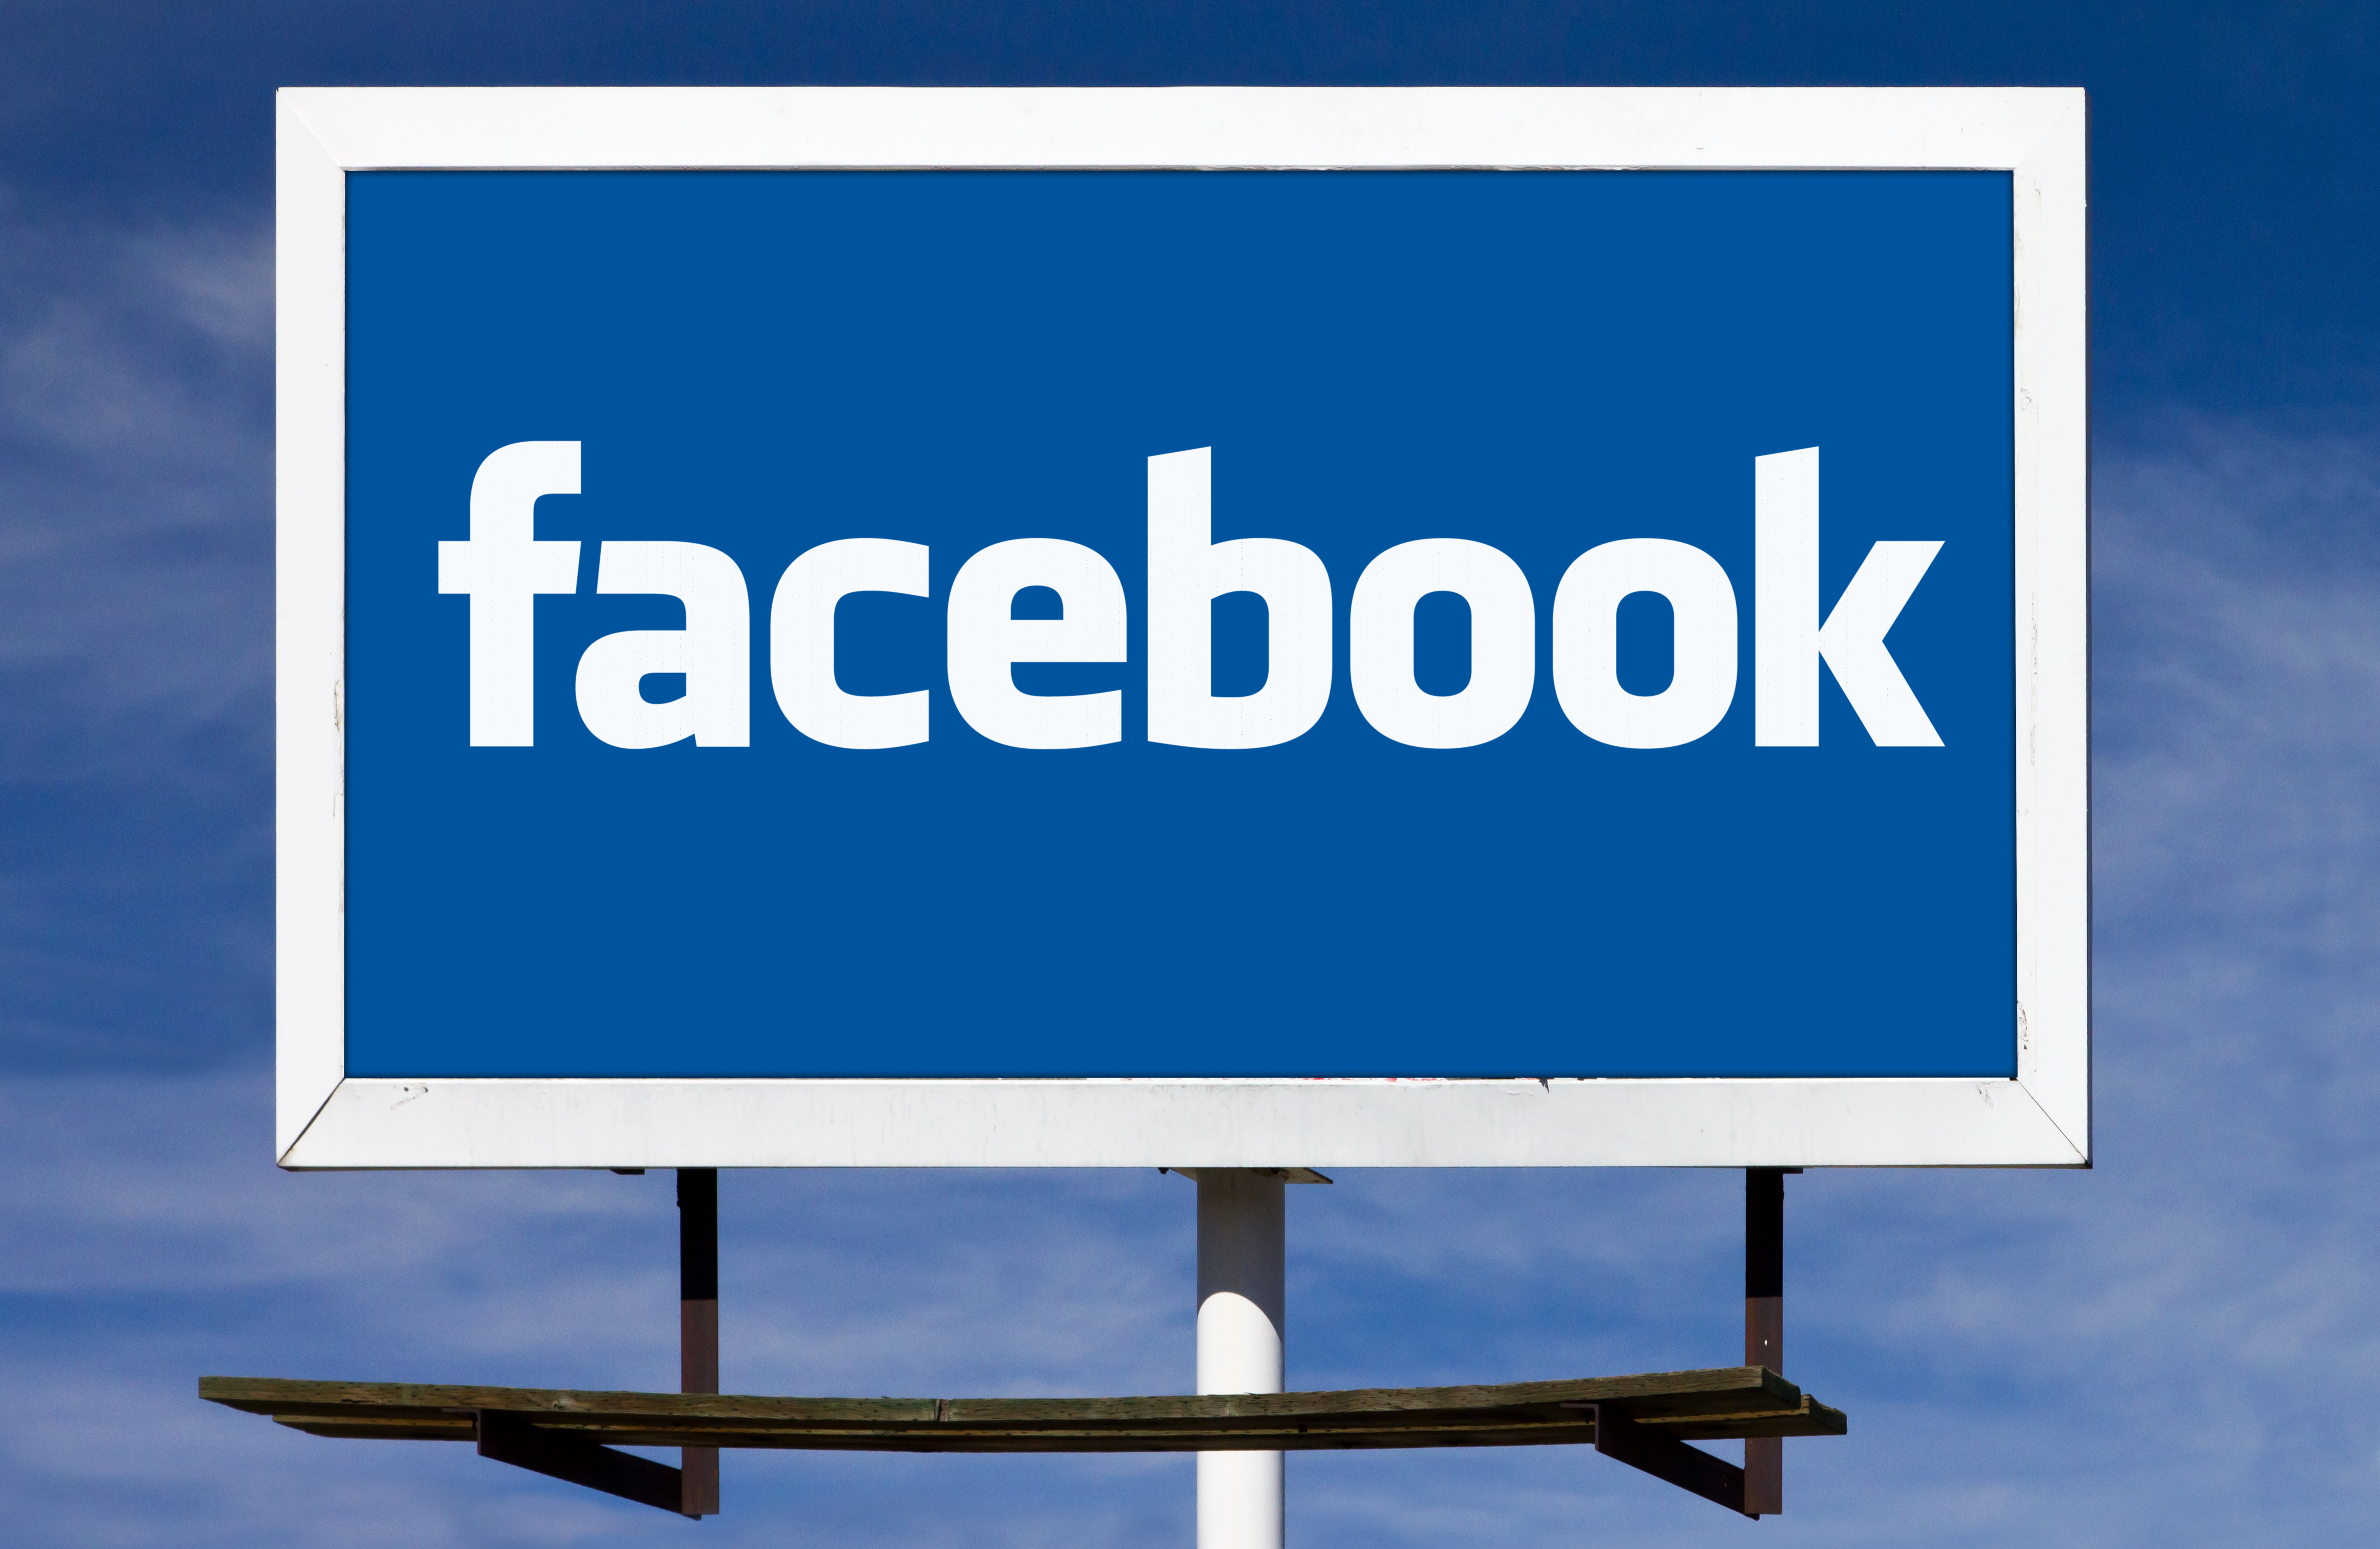 Richard Vanderhurst - Expert Advice On How To Use Facebook For Marketing